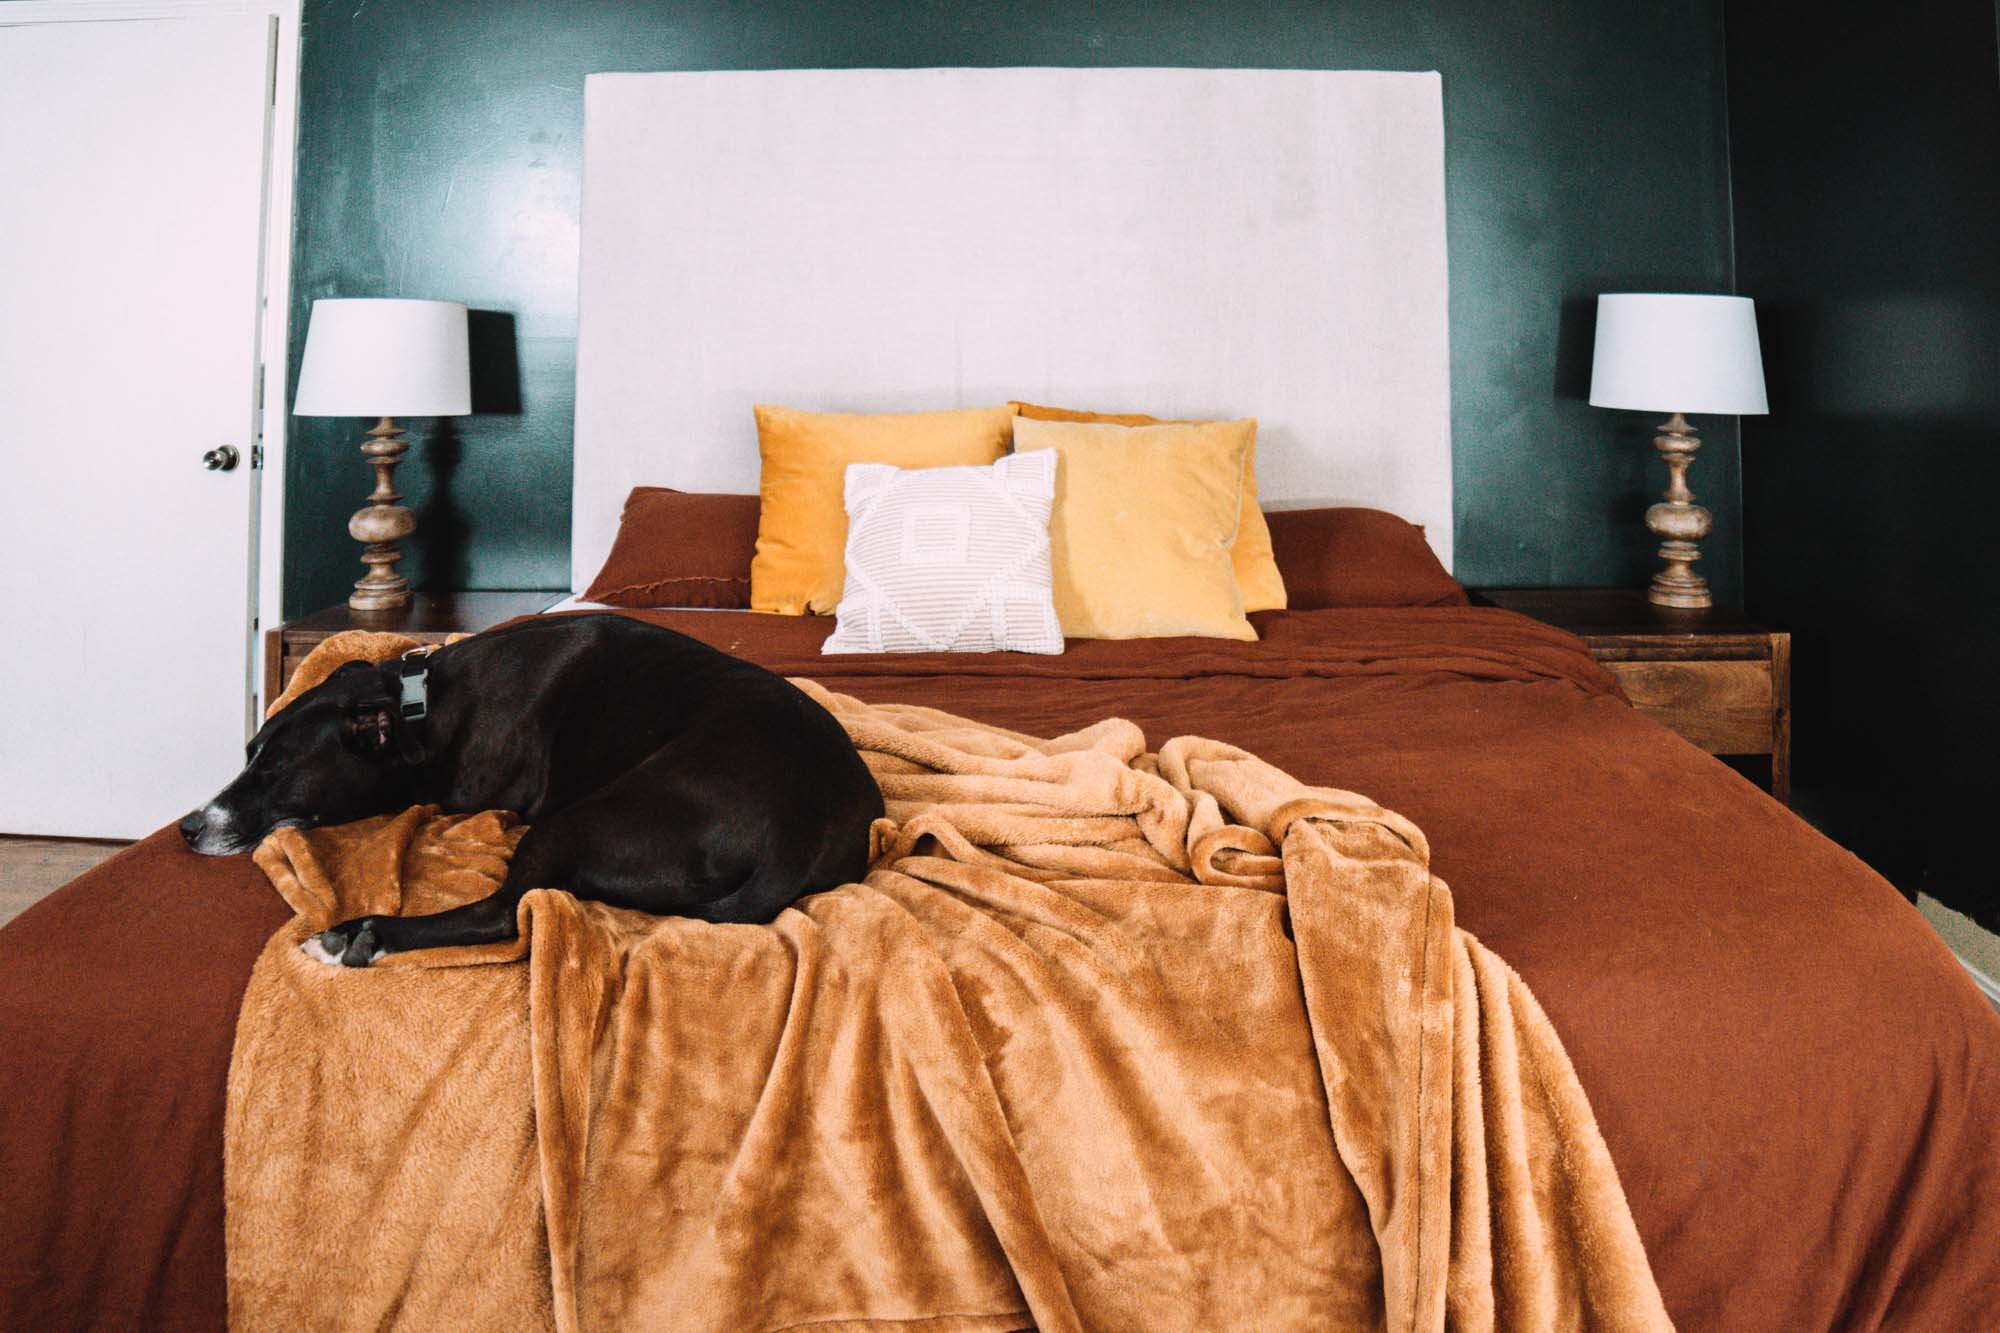 An Adjustable Split King Mattress in a flat position with bedding added and a dog laying on it.